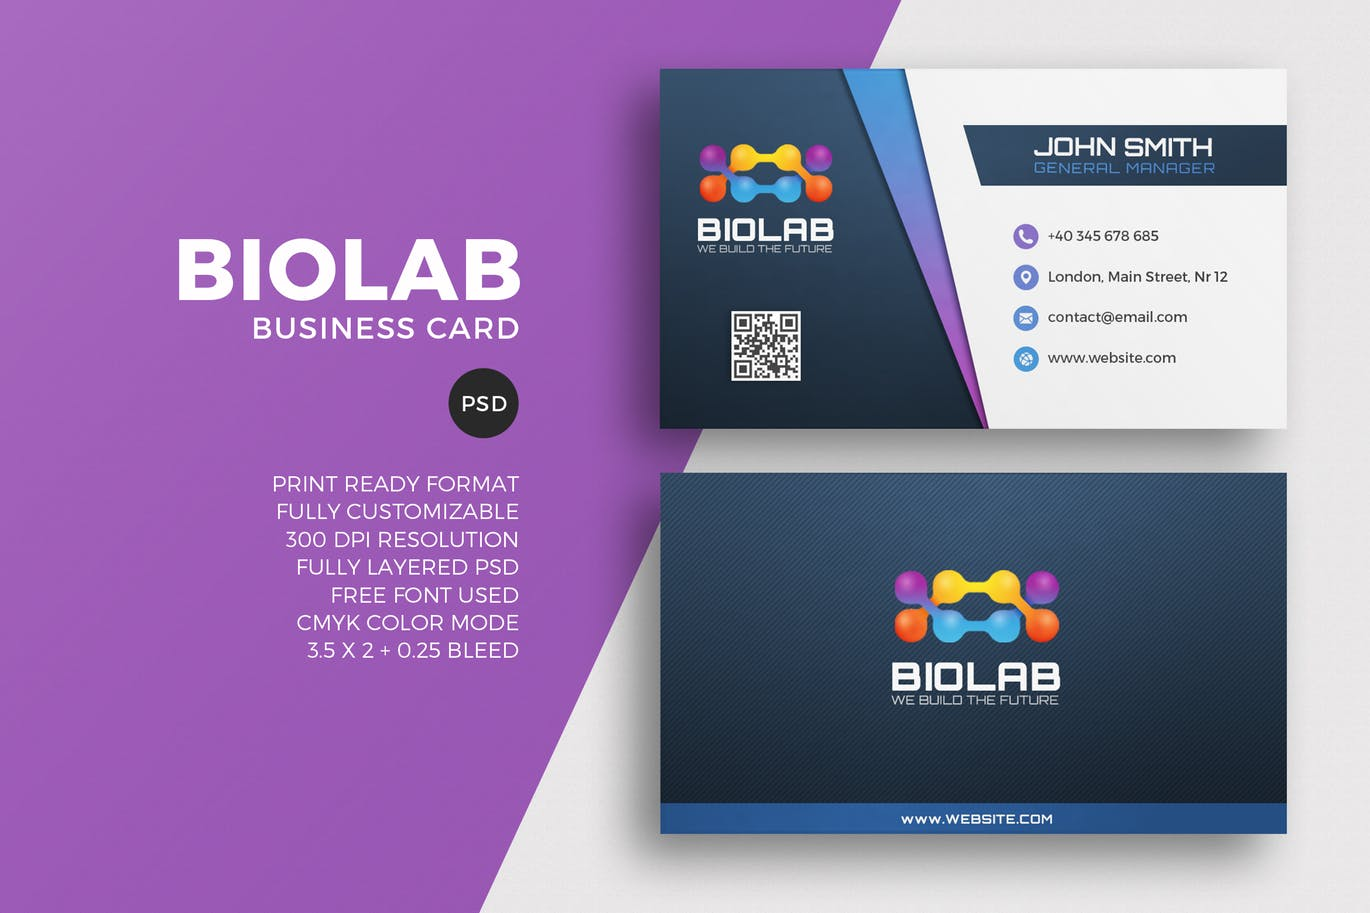 Biolab business card template